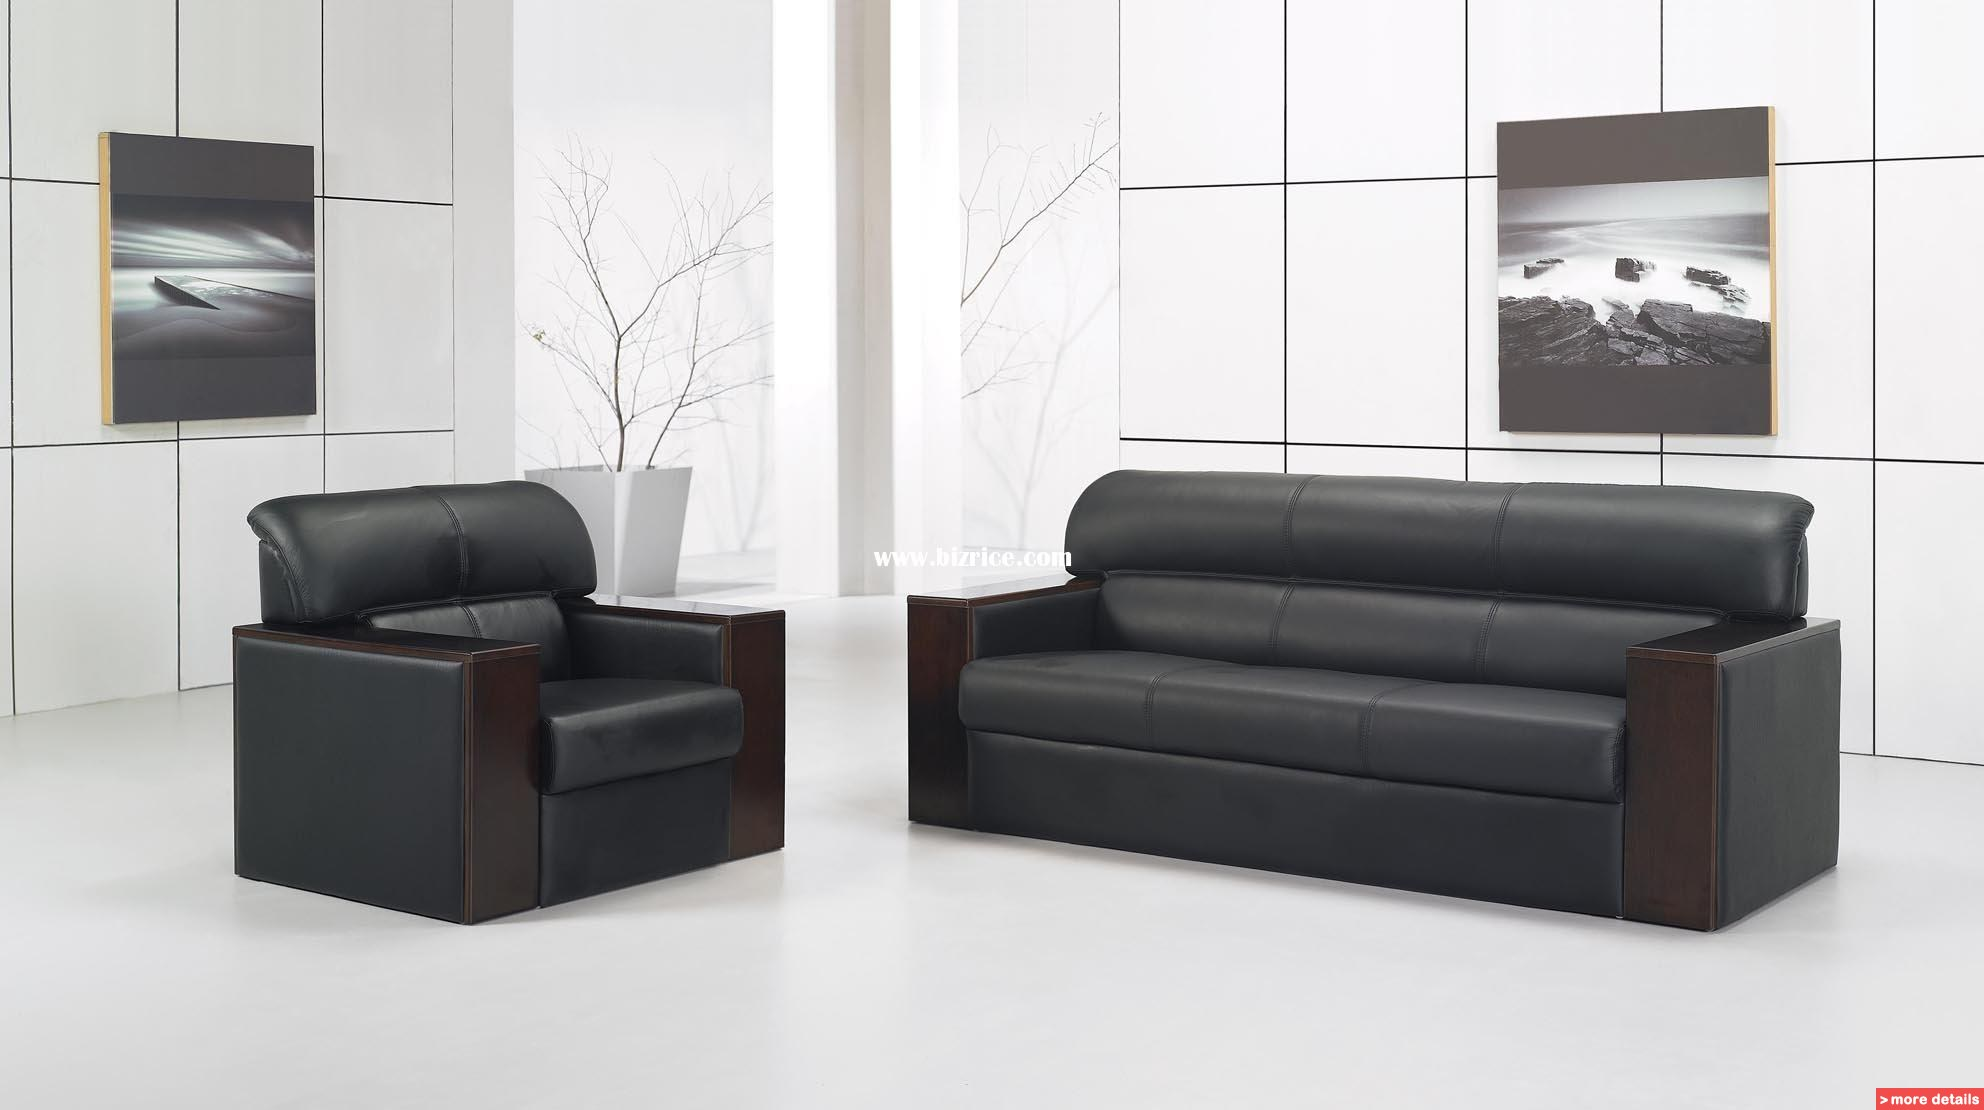 Unique Small Couch For Office 65 For Sofa Design Ideas with Small Couch For Office